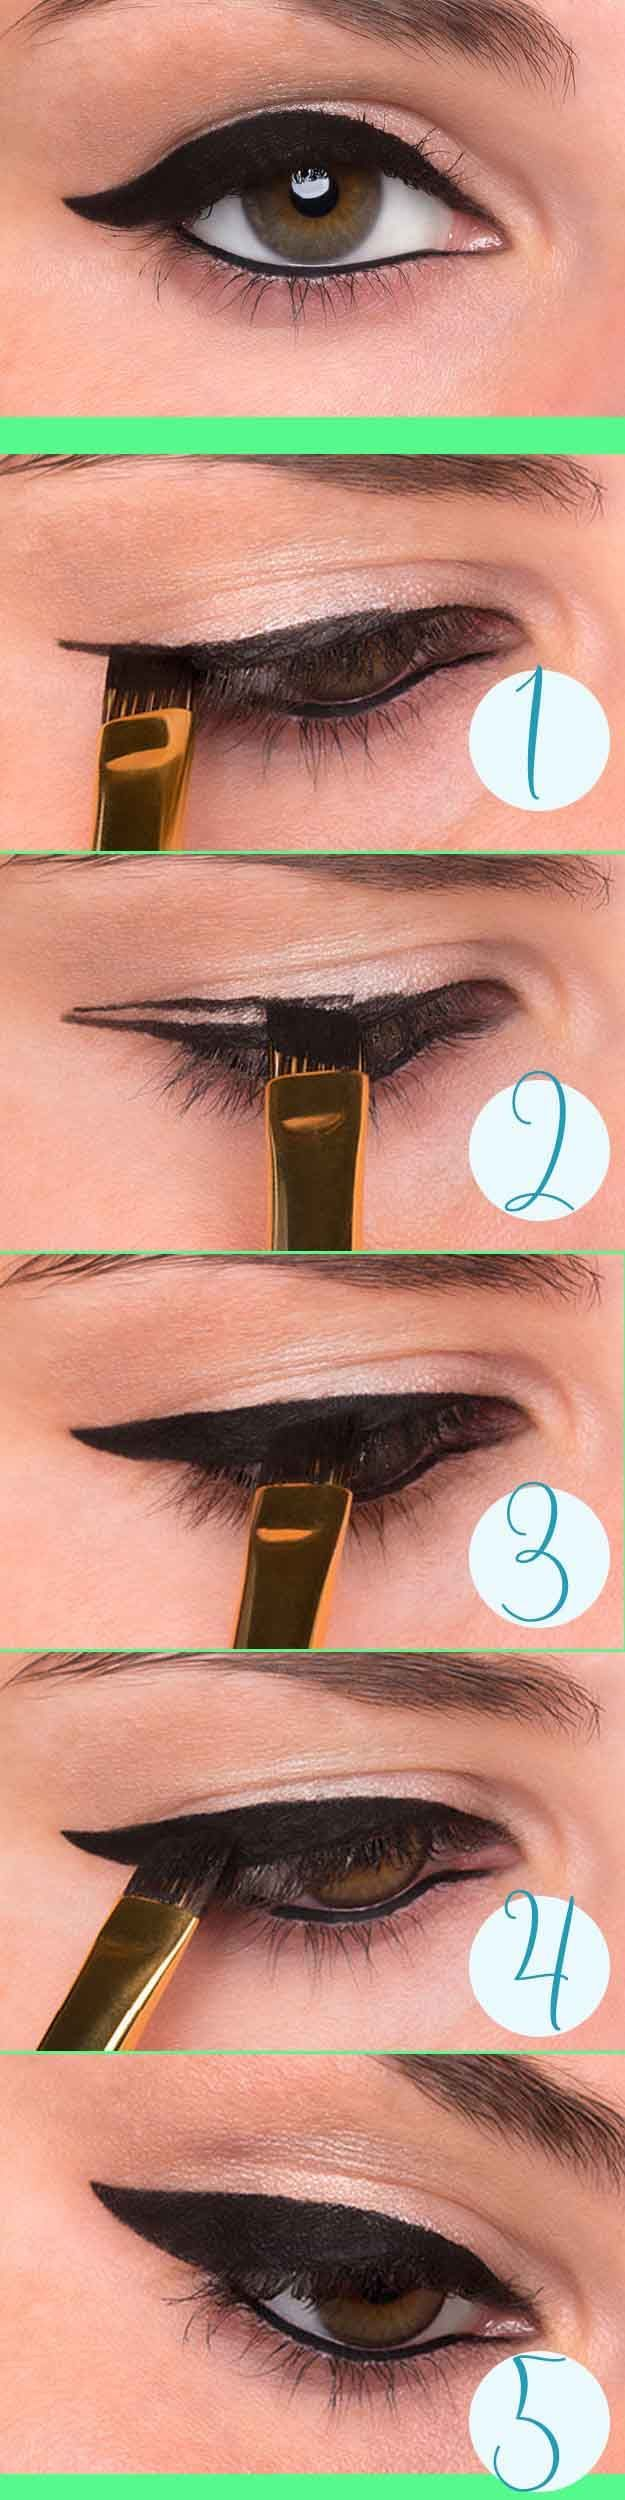 25 Must Know Eyeliner Hacks -How to Do Winged Eyeliner -Winged Looks and Easy Makeup Tricks and Guides for Liquid Pencil and Gel Styles. Step by Step Tutorials with Pictures using Tape or a Spoon thegoddess.com/eyeliner-hacks